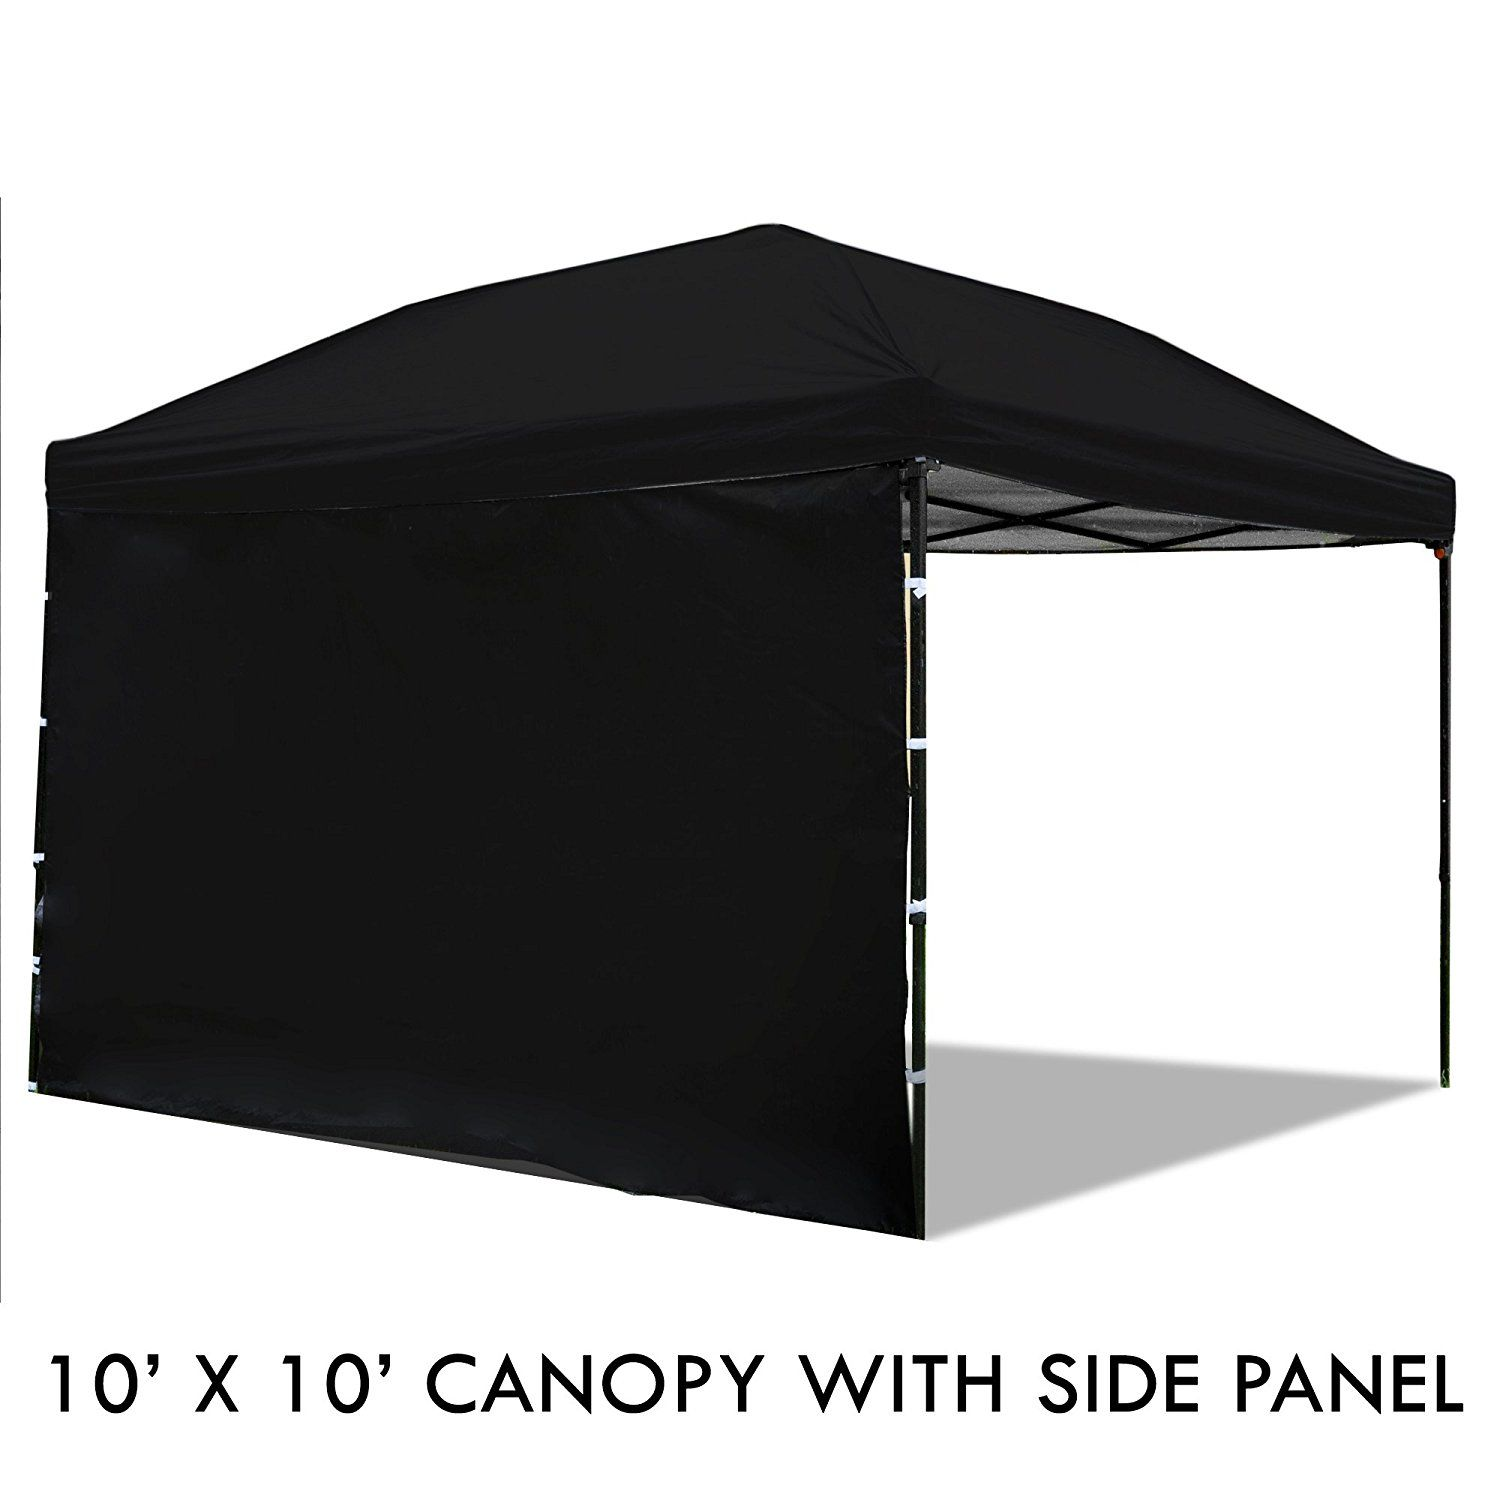 Top 10 Best Canopy Tents Reviews in 2017  sc 1 st  Pinterest & 3. Top 10 Best Canopy Tents Reviews in 2017 | Top 10 Best Canopy ...